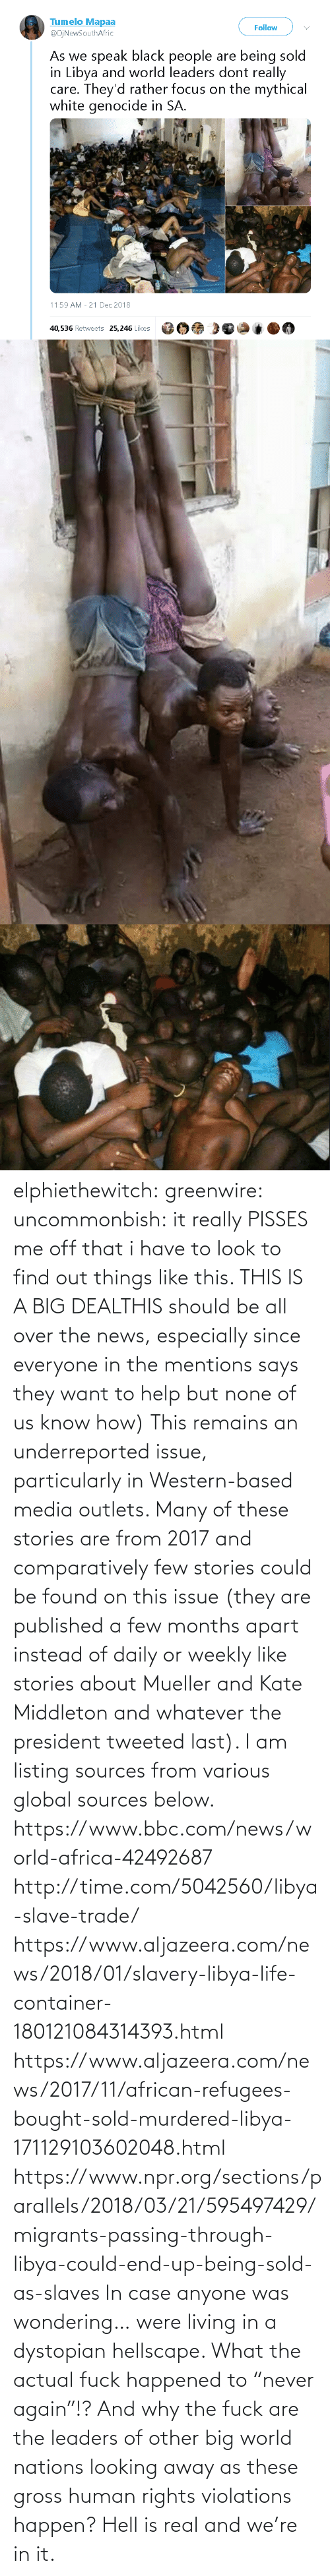 "president: elphiethewitch: greenwire:  uncommonbish:  it really PISSES me off that i have to look to find out things like this. THIS IS A BIG DEALTHIS should be all over the news, especially since everyone in the mentions says they want to help but none of us know how)  This remains an underreported issue, particularly in Western-based media outlets. Many of these stories are from 2017 and comparatively few stories could be found on this issue (they are published a few months apart instead of daily or weekly like stories about Mueller and Kate Middleton and whatever the president tweeted last). I am listing sources from various global sources below.  https://www.bbc.com/news/world-africa-42492687 http://time.com/5042560/libya-slave-trade/ https://www.aljazeera.com/news/2018/01/slavery-libya-life-container-180121084314393.html https://www.aljazeera.com/news/2017/11/african-refugees-bought-sold-murdered-libya-171129103602048.html https://www.npr.org/sections/parallels/2018/03/21/595497429/migrants-passing-through-libya-could-end-up-being-sold-as-slaves   In case anyone was wondering… were living in a dystopian hellscape.  What the actual fuck happened to ""never again""!? And why the fuck are the leaders of other big world nations looking away as these gross human rights violations happen?  Hell is real and we're in it."